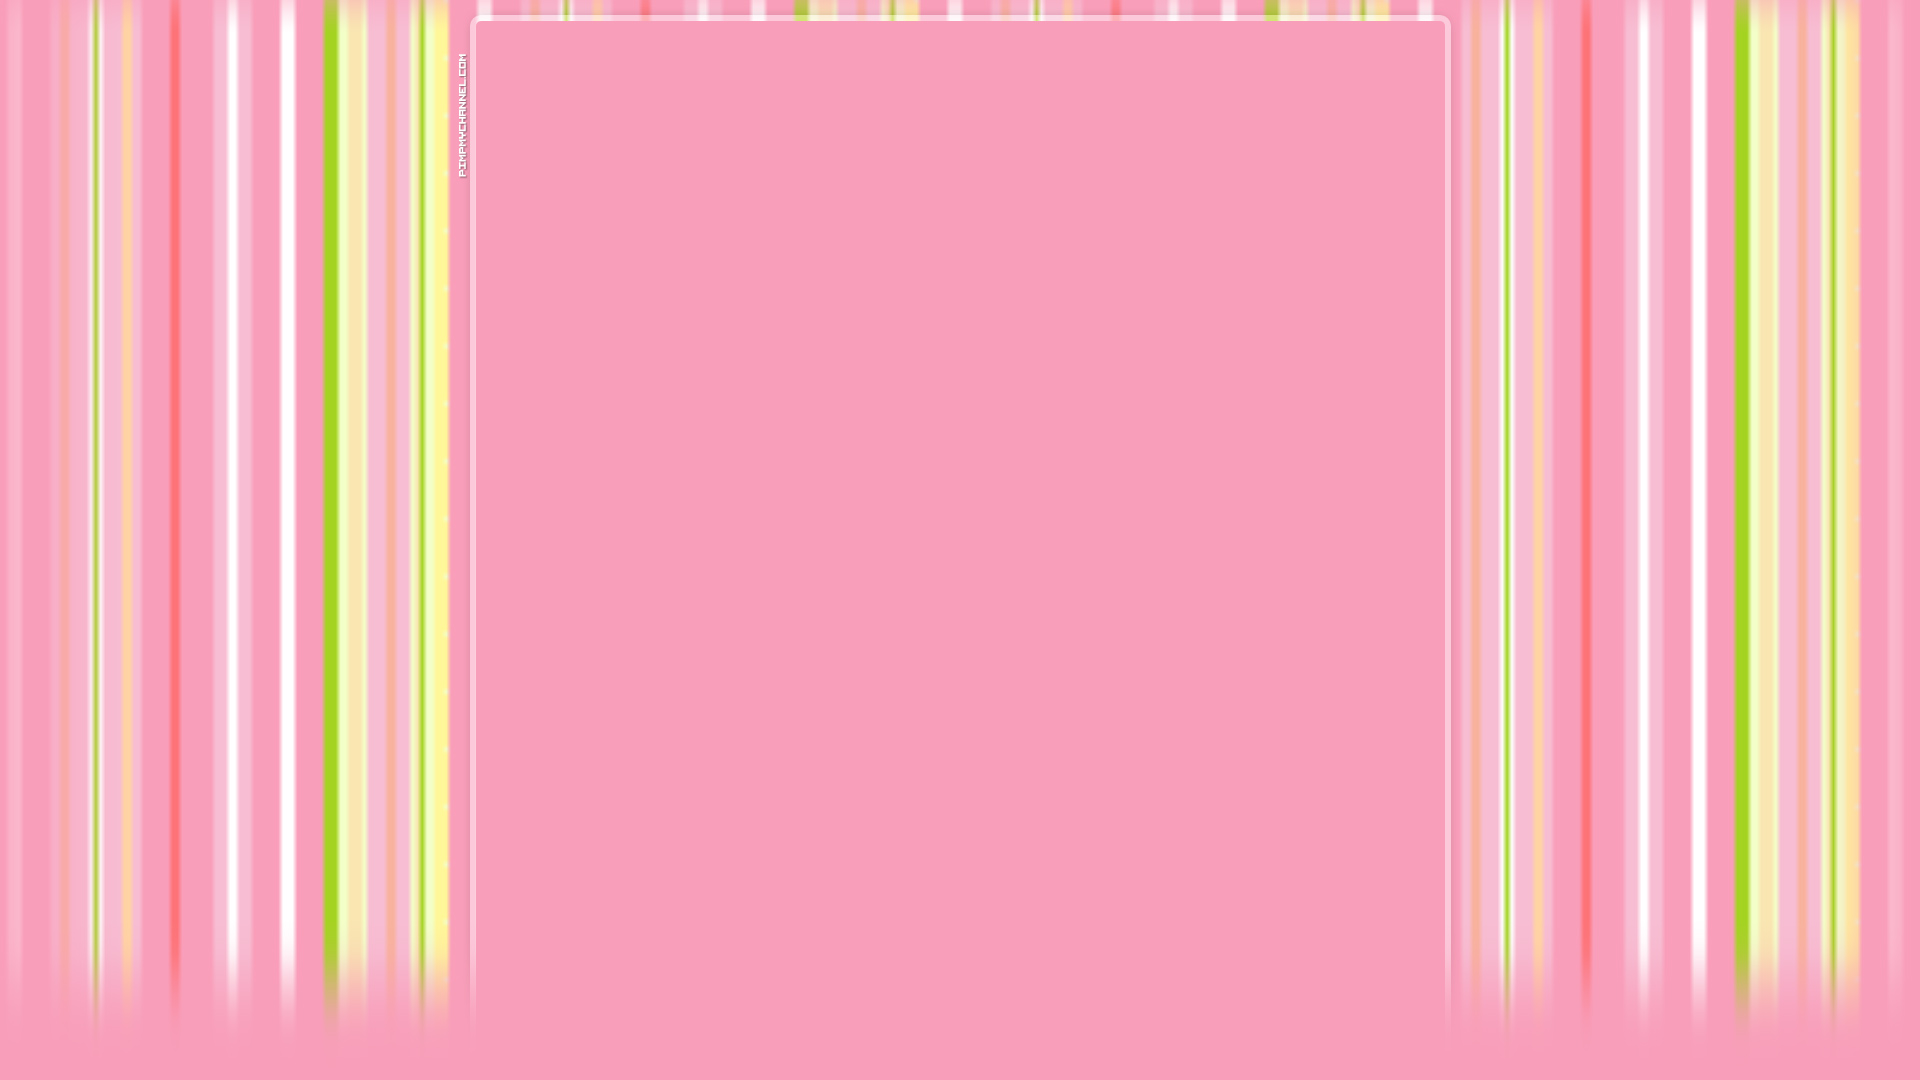 Cute Teddy Bear And Love Wallpapers Download For Mobile Cute Pink Wallpapers Pixelstalk Net